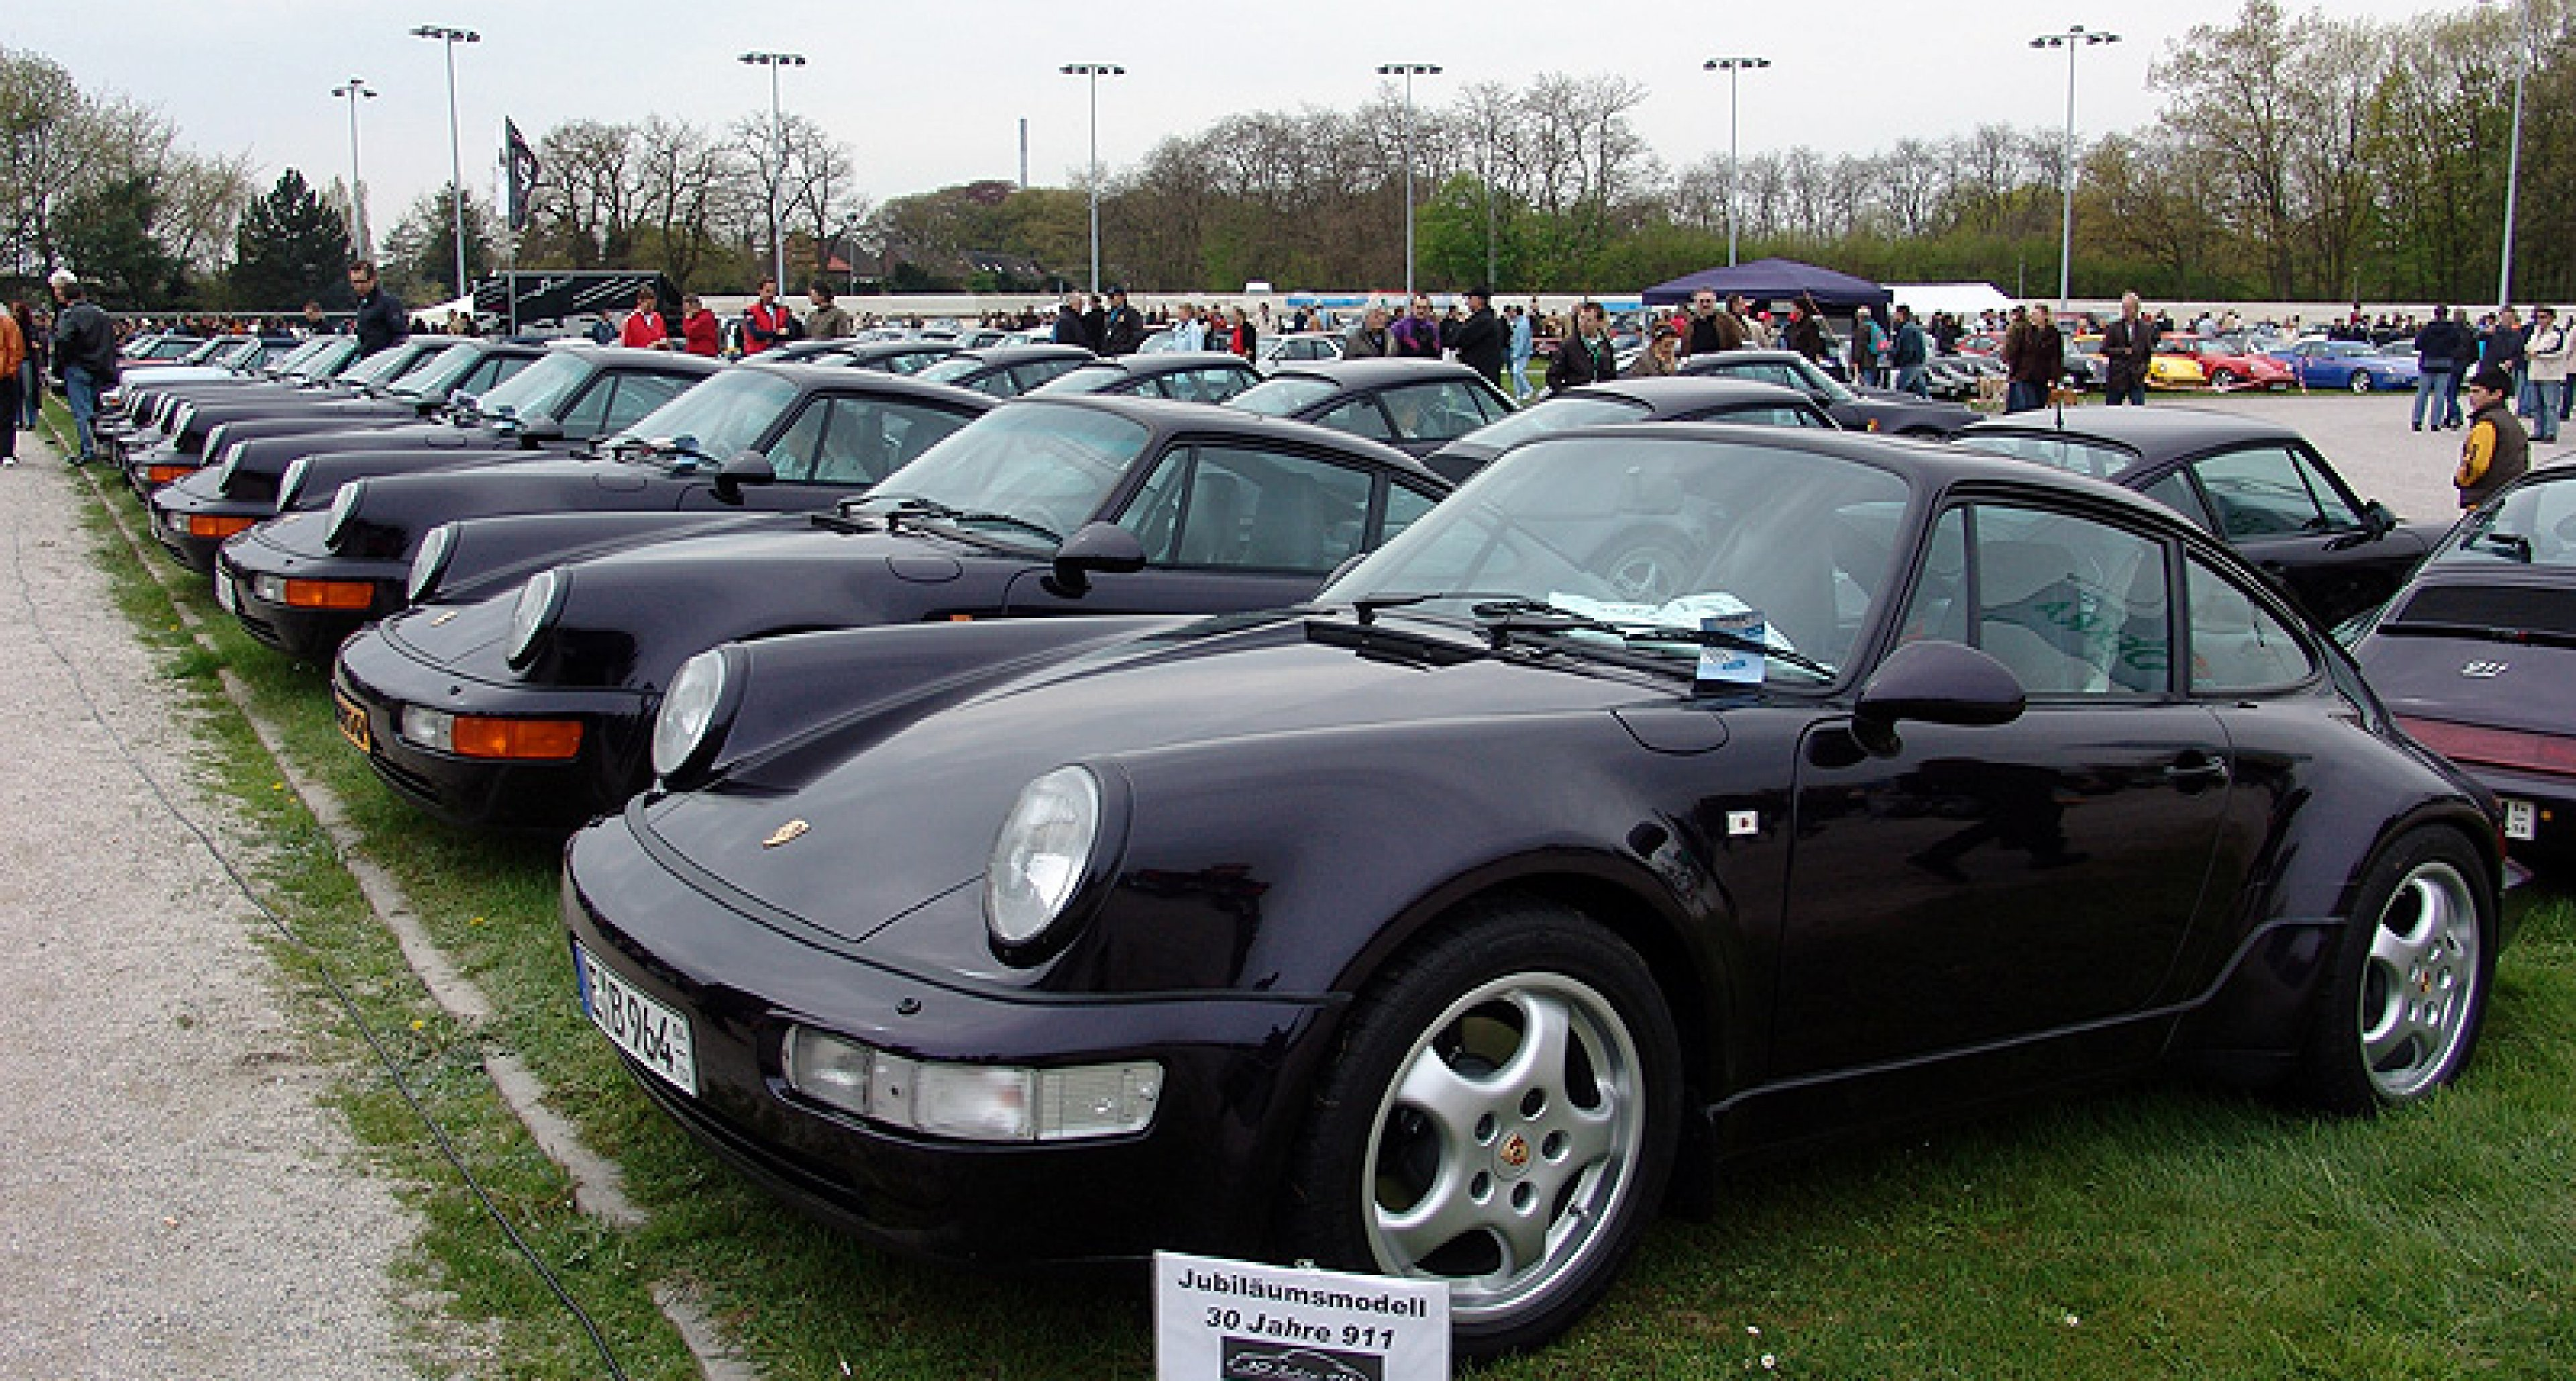 Internationaler Porsche Club Day in Dinslaken: Weltgrößtes Porsche-Treffen